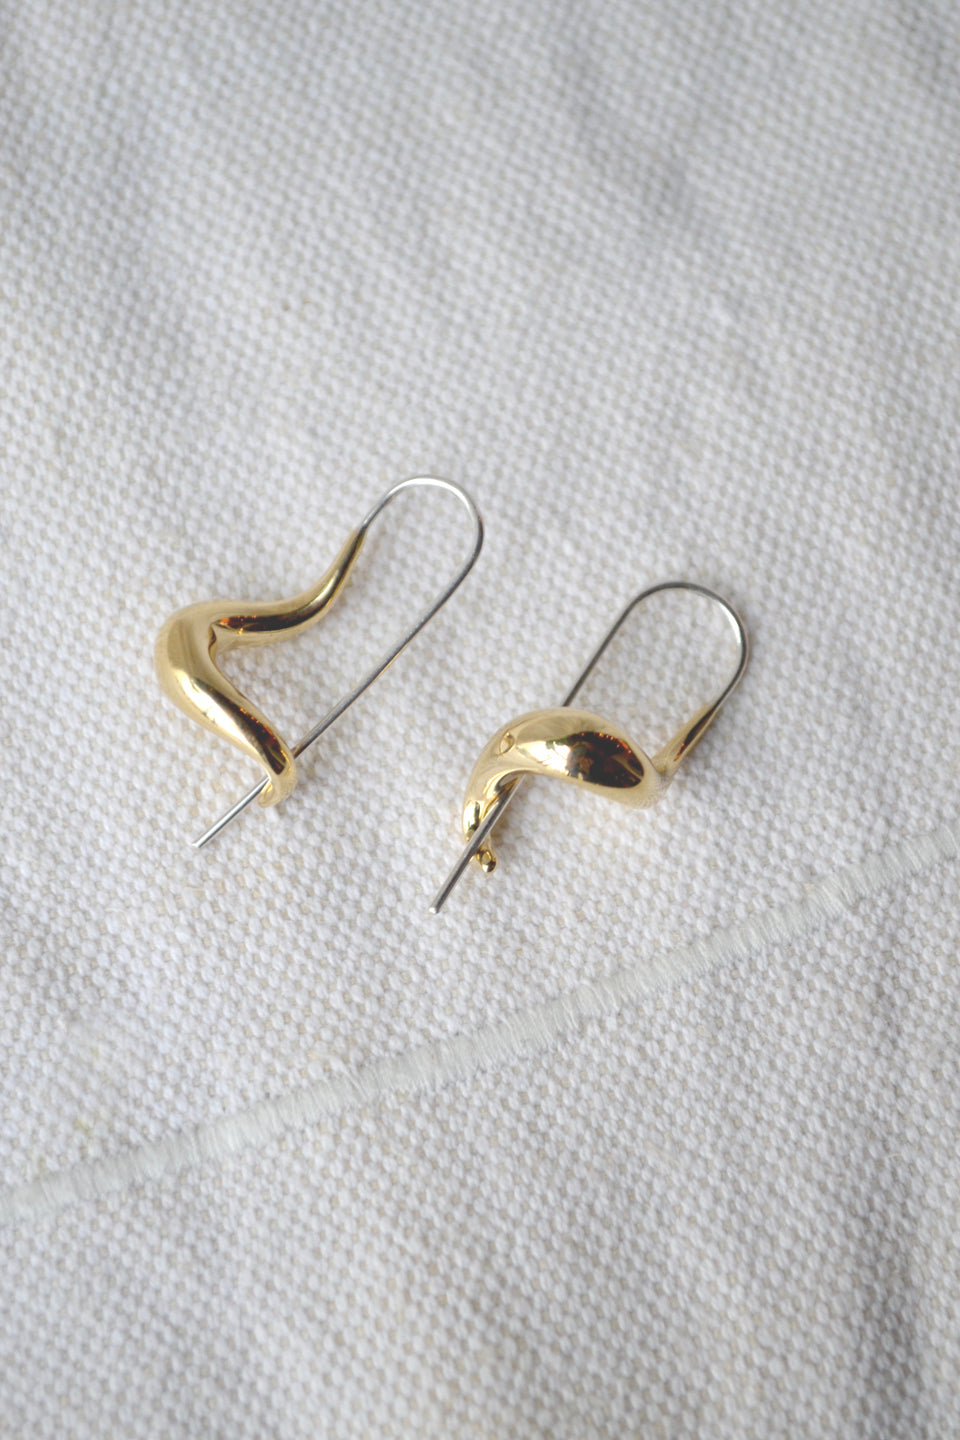 Harmon Earrings